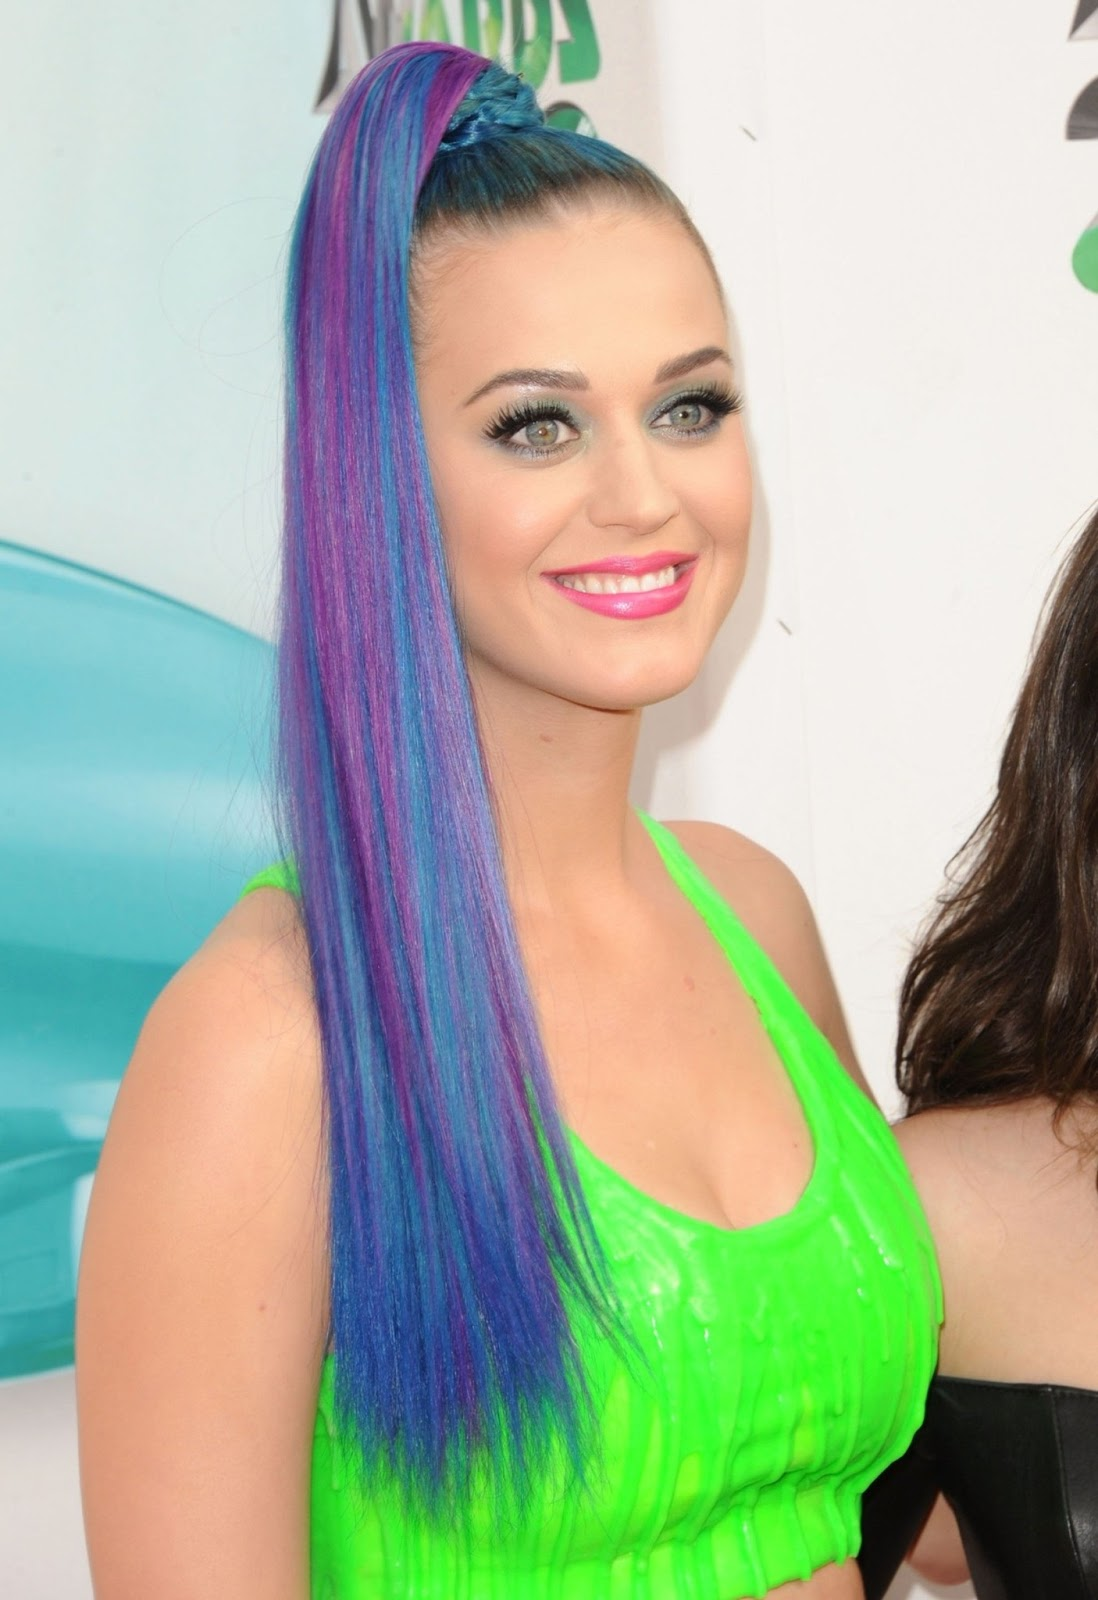 Katy Perry Katy Perry Greenhair